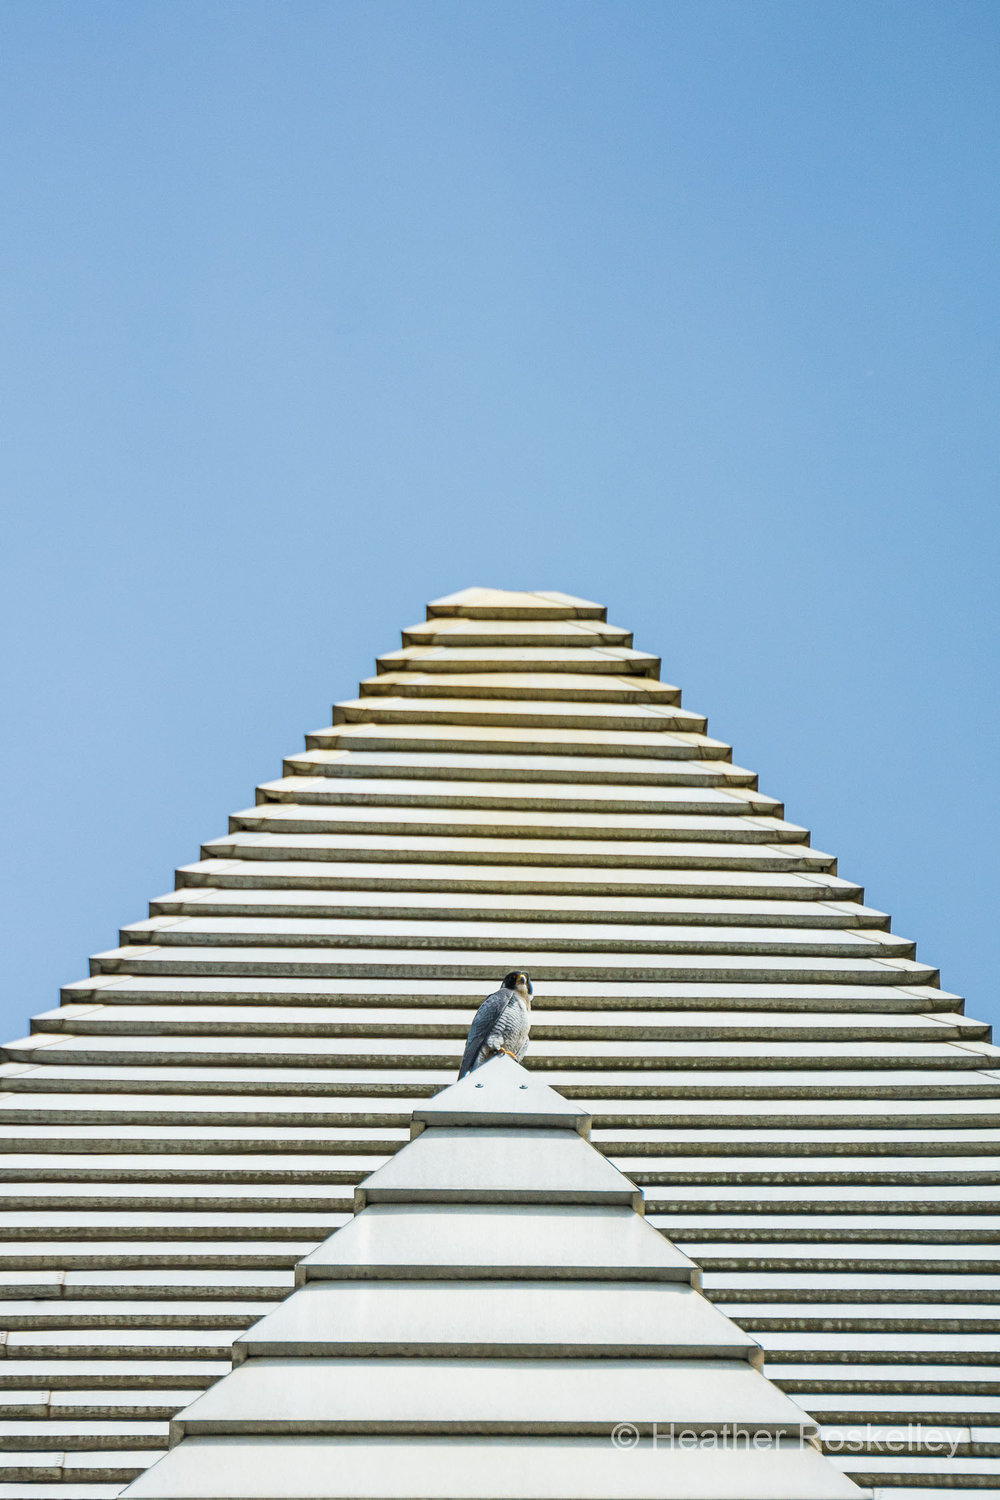 Murray sitting on a pyramid at the top of the 1119 Pacific Avenue building, which gives him a good view of his chicks.  This building was the tallest west of the Mississippi from 1911 until 1914. Perhaps Murray is envisioning himself to be the Egyptian falcon god, Horus.